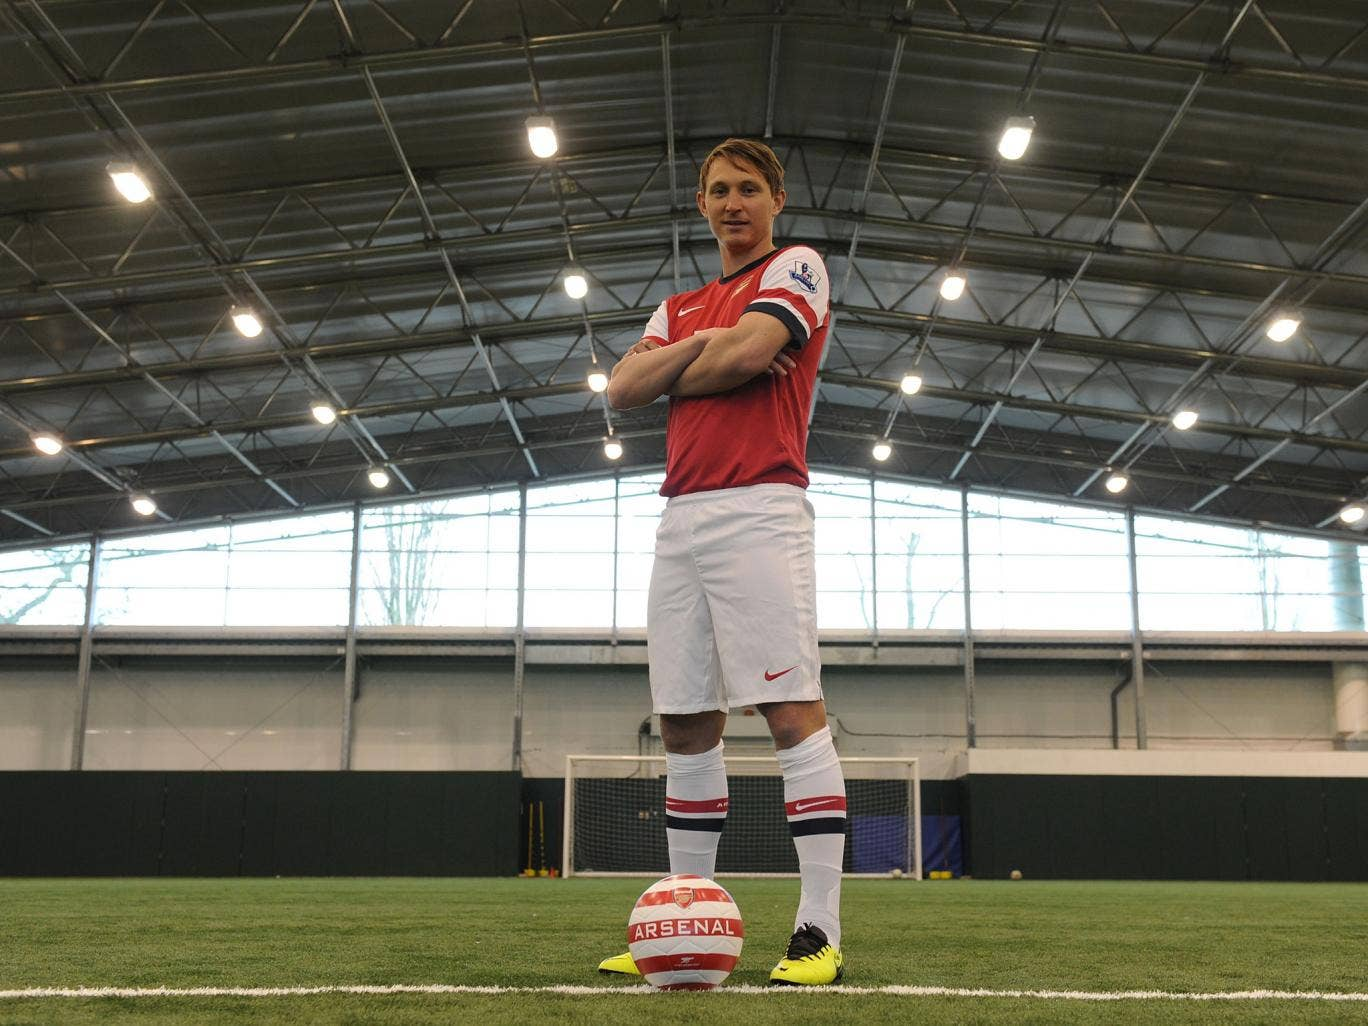 Arsenal unveil their new loan-signing Kim Kallstrom from Spartak Moscow